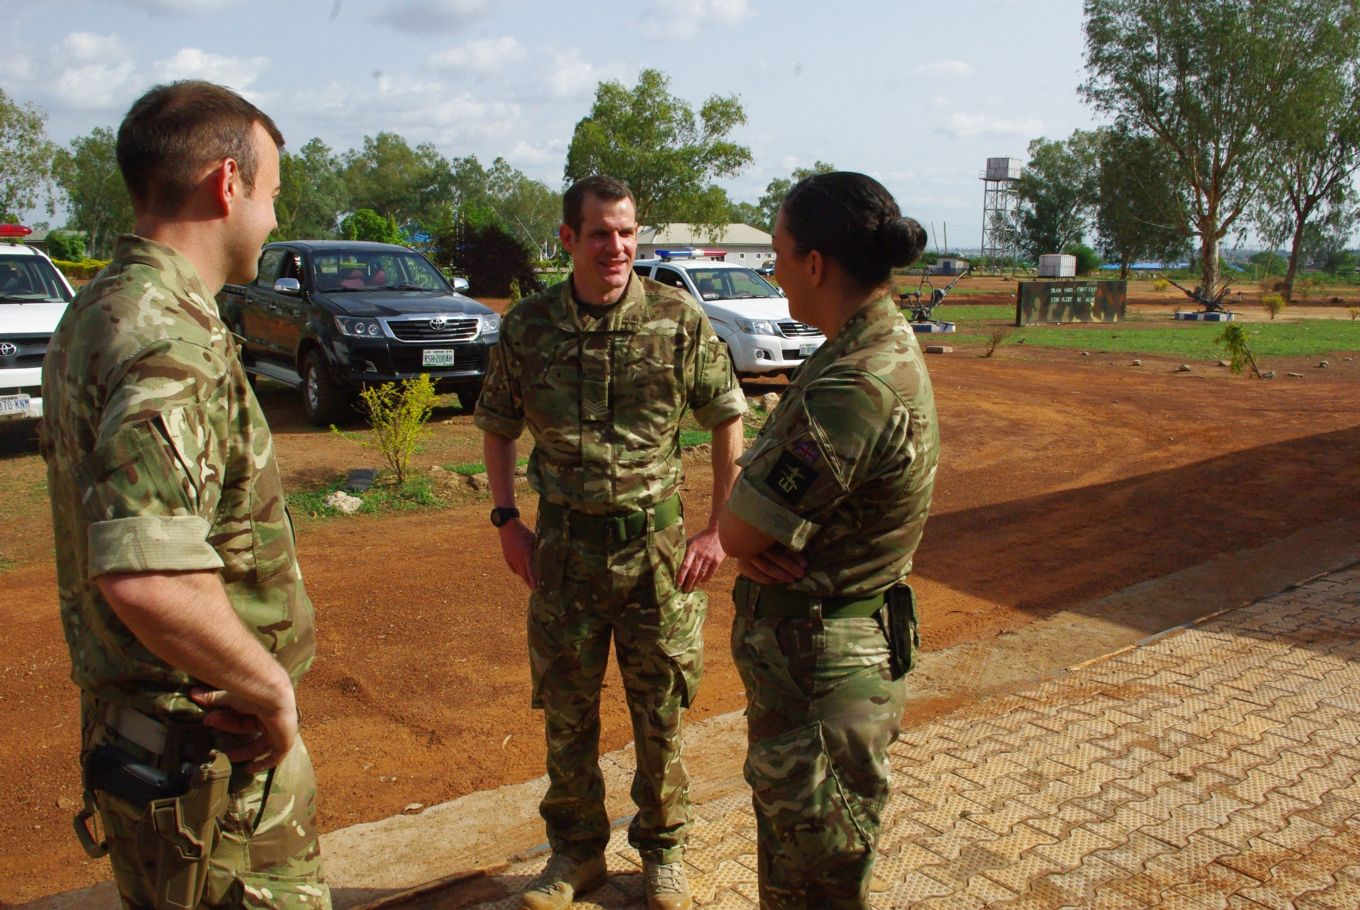 Sqn medics providing in country briefings